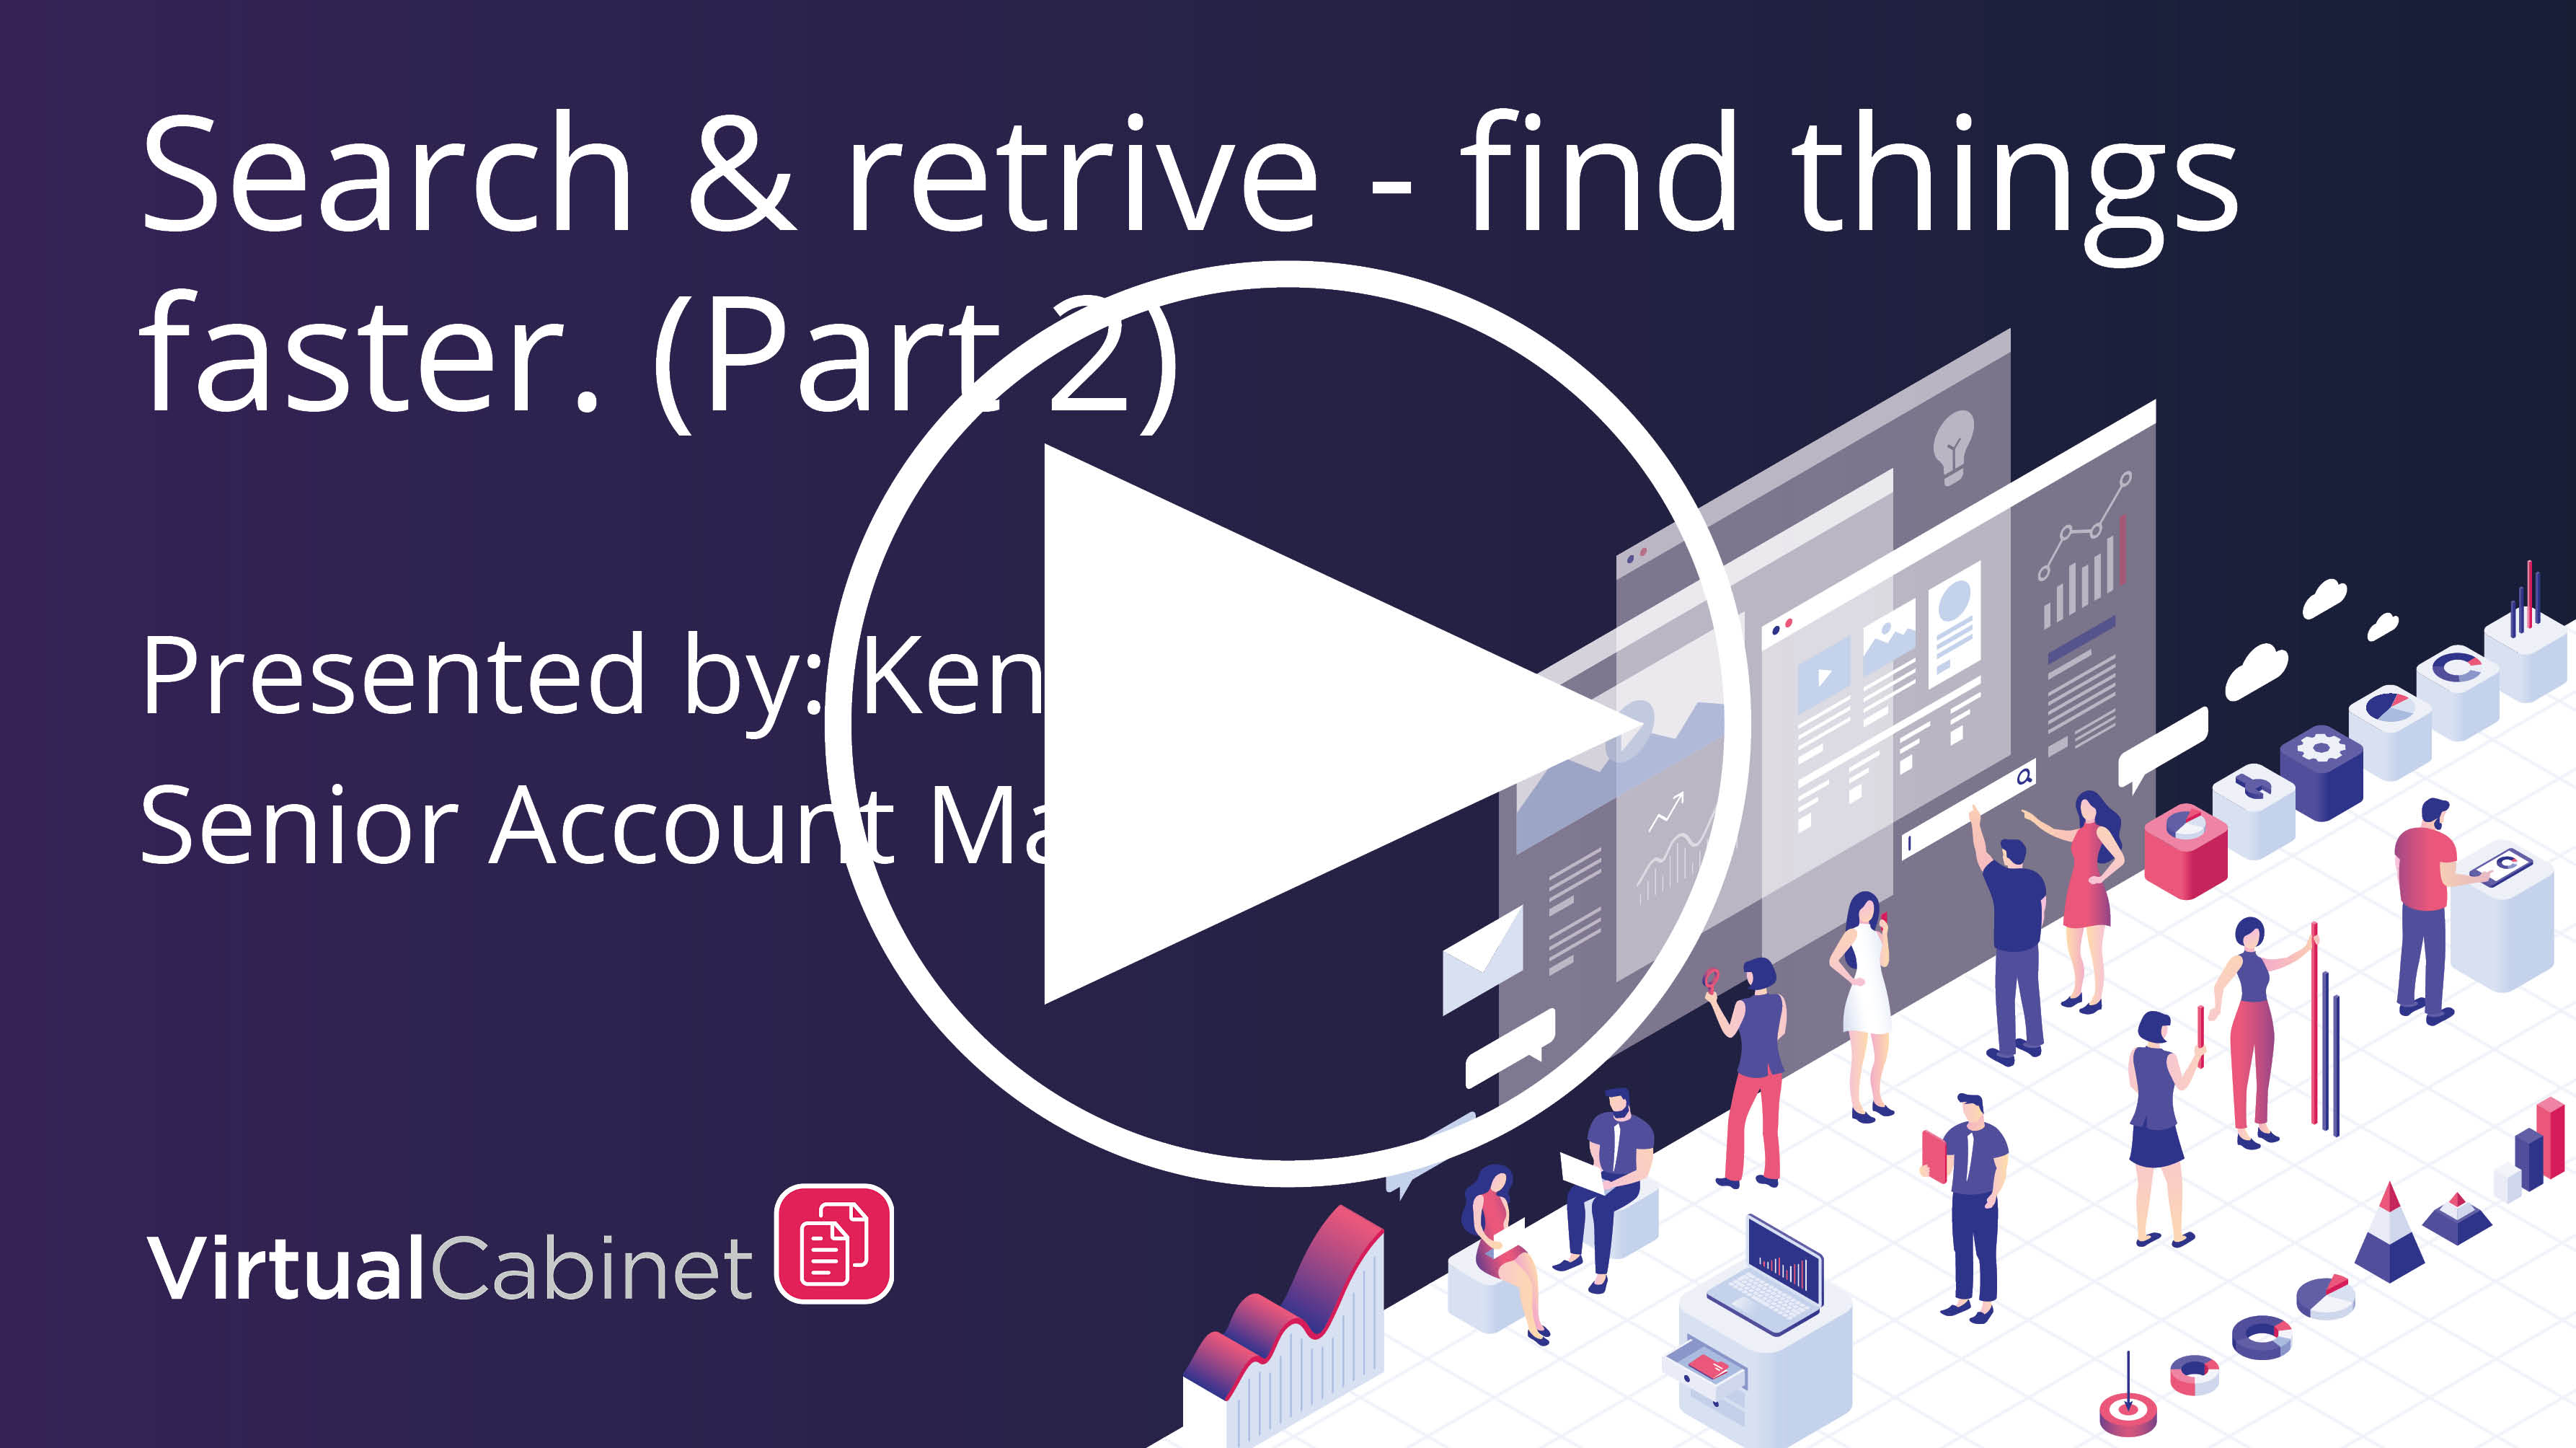 Search and retrieve - find things faster (part 2)